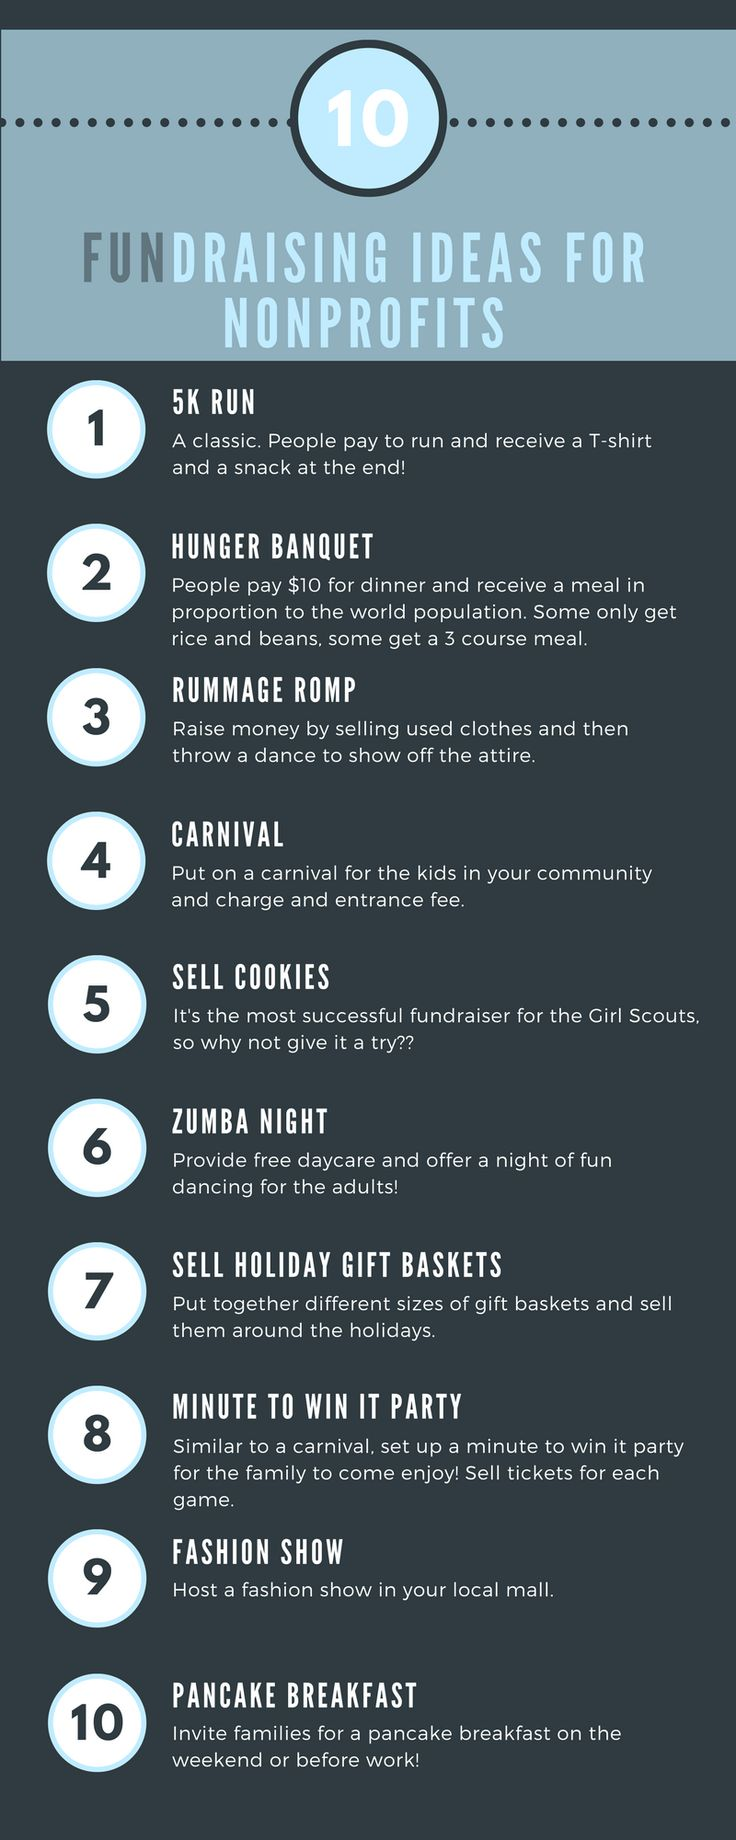 Are you looking for new fundraising ideas for your nonprofit organization? Here is a list of 50 fundraising ideas for your organization!